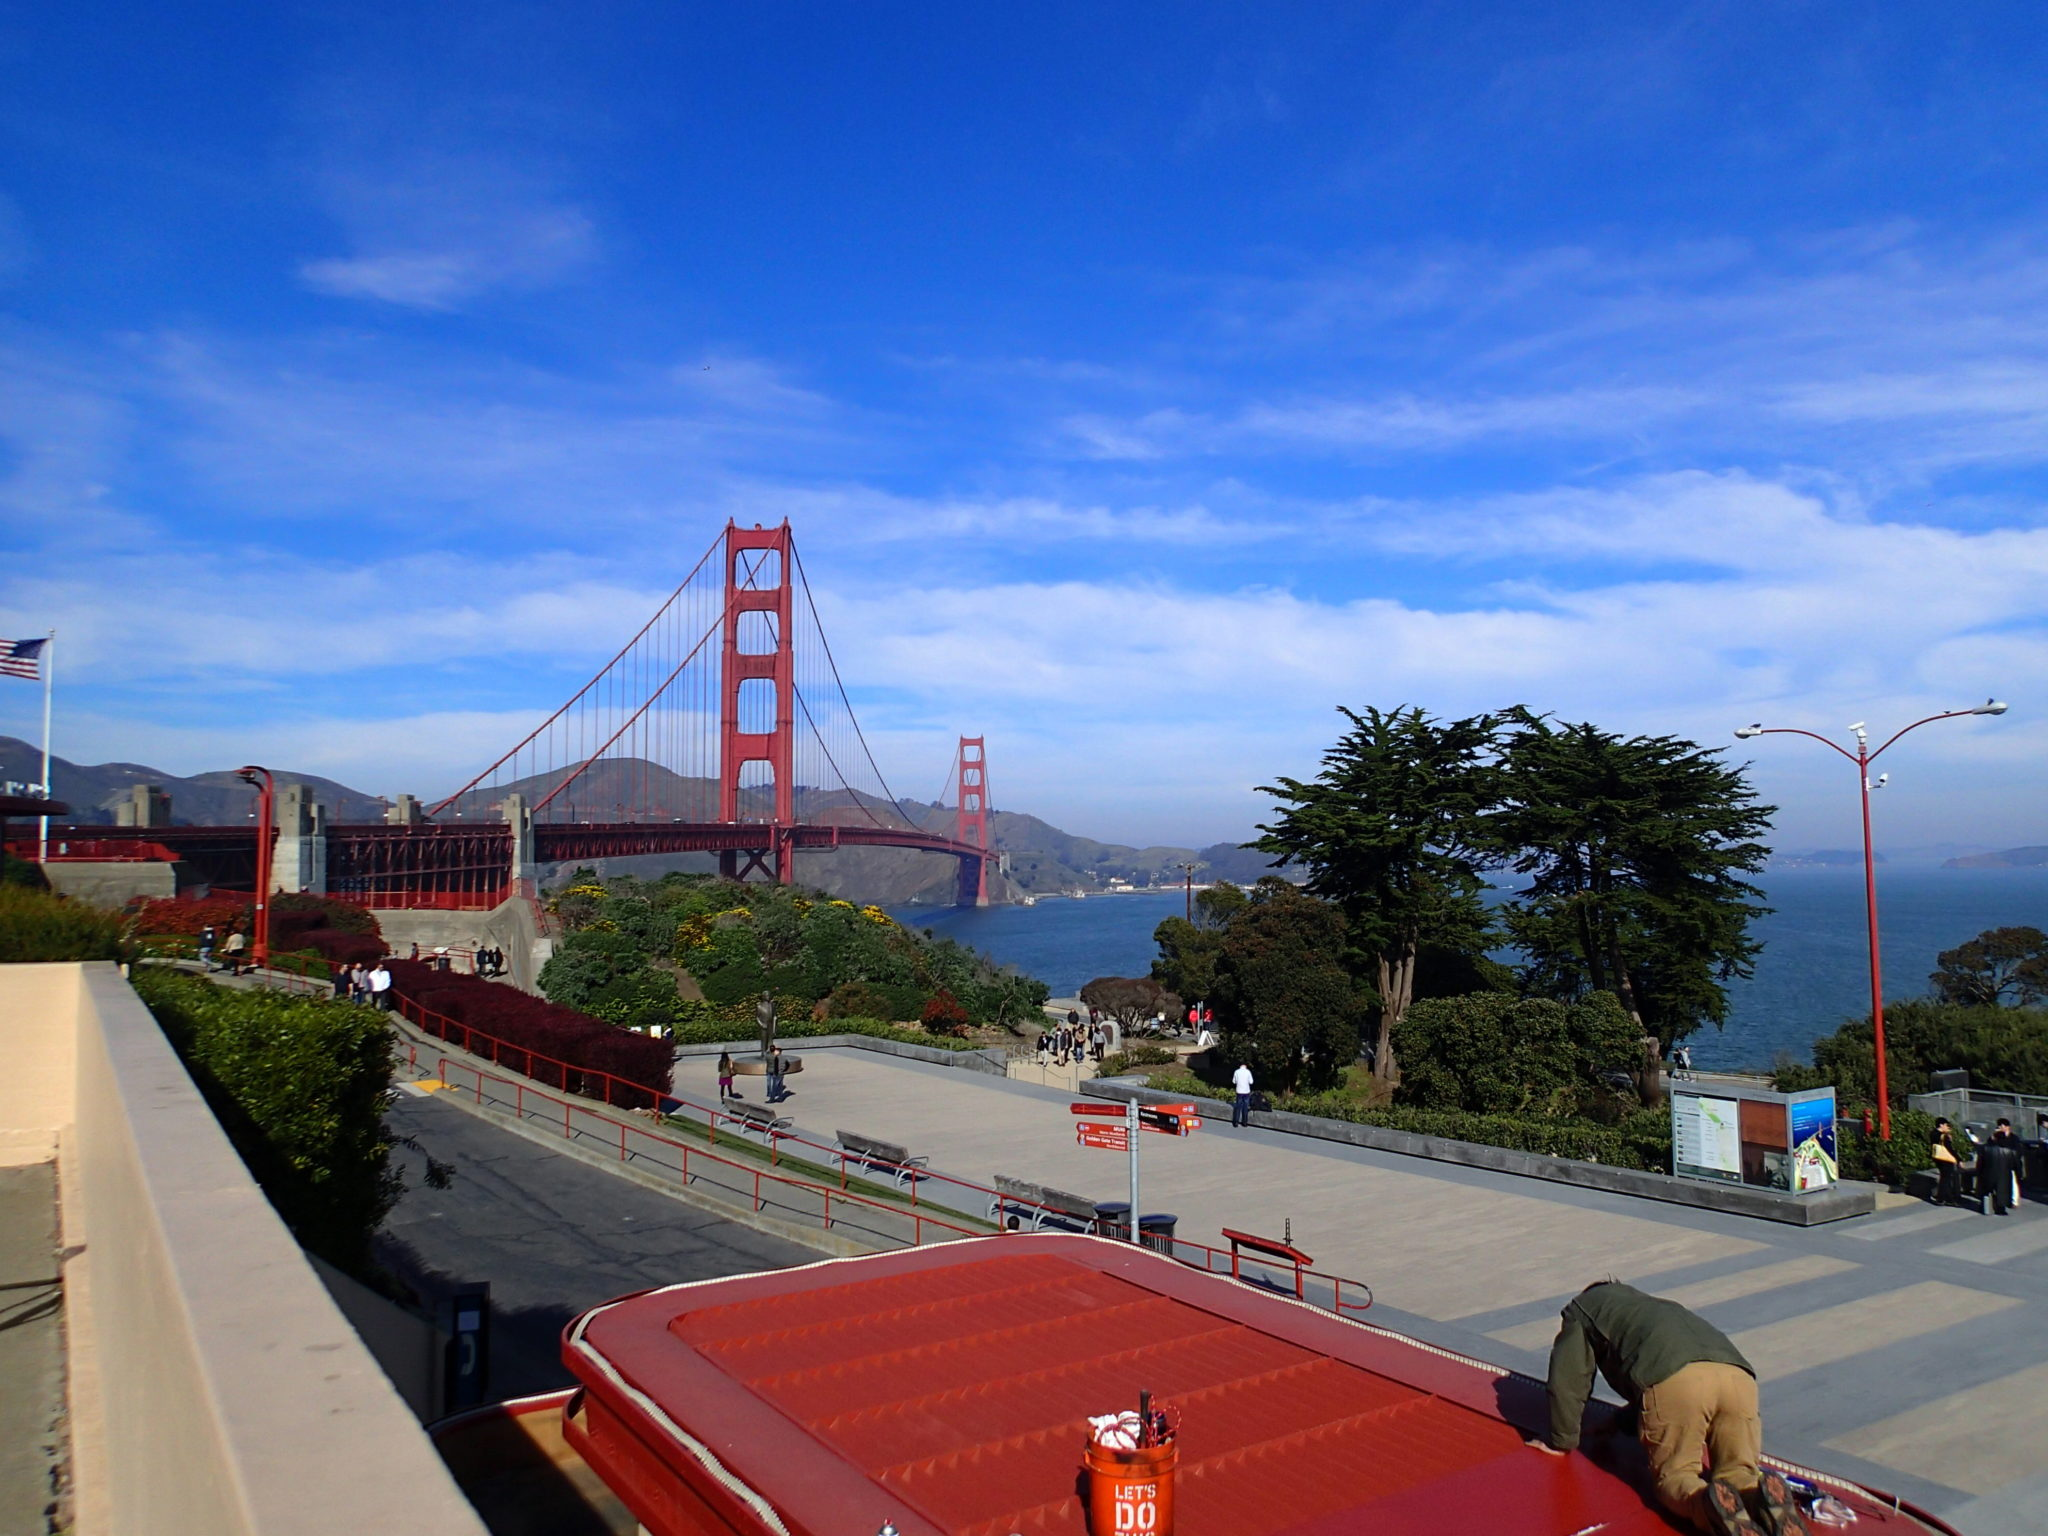 San Francisco Trip Photo Gallery added